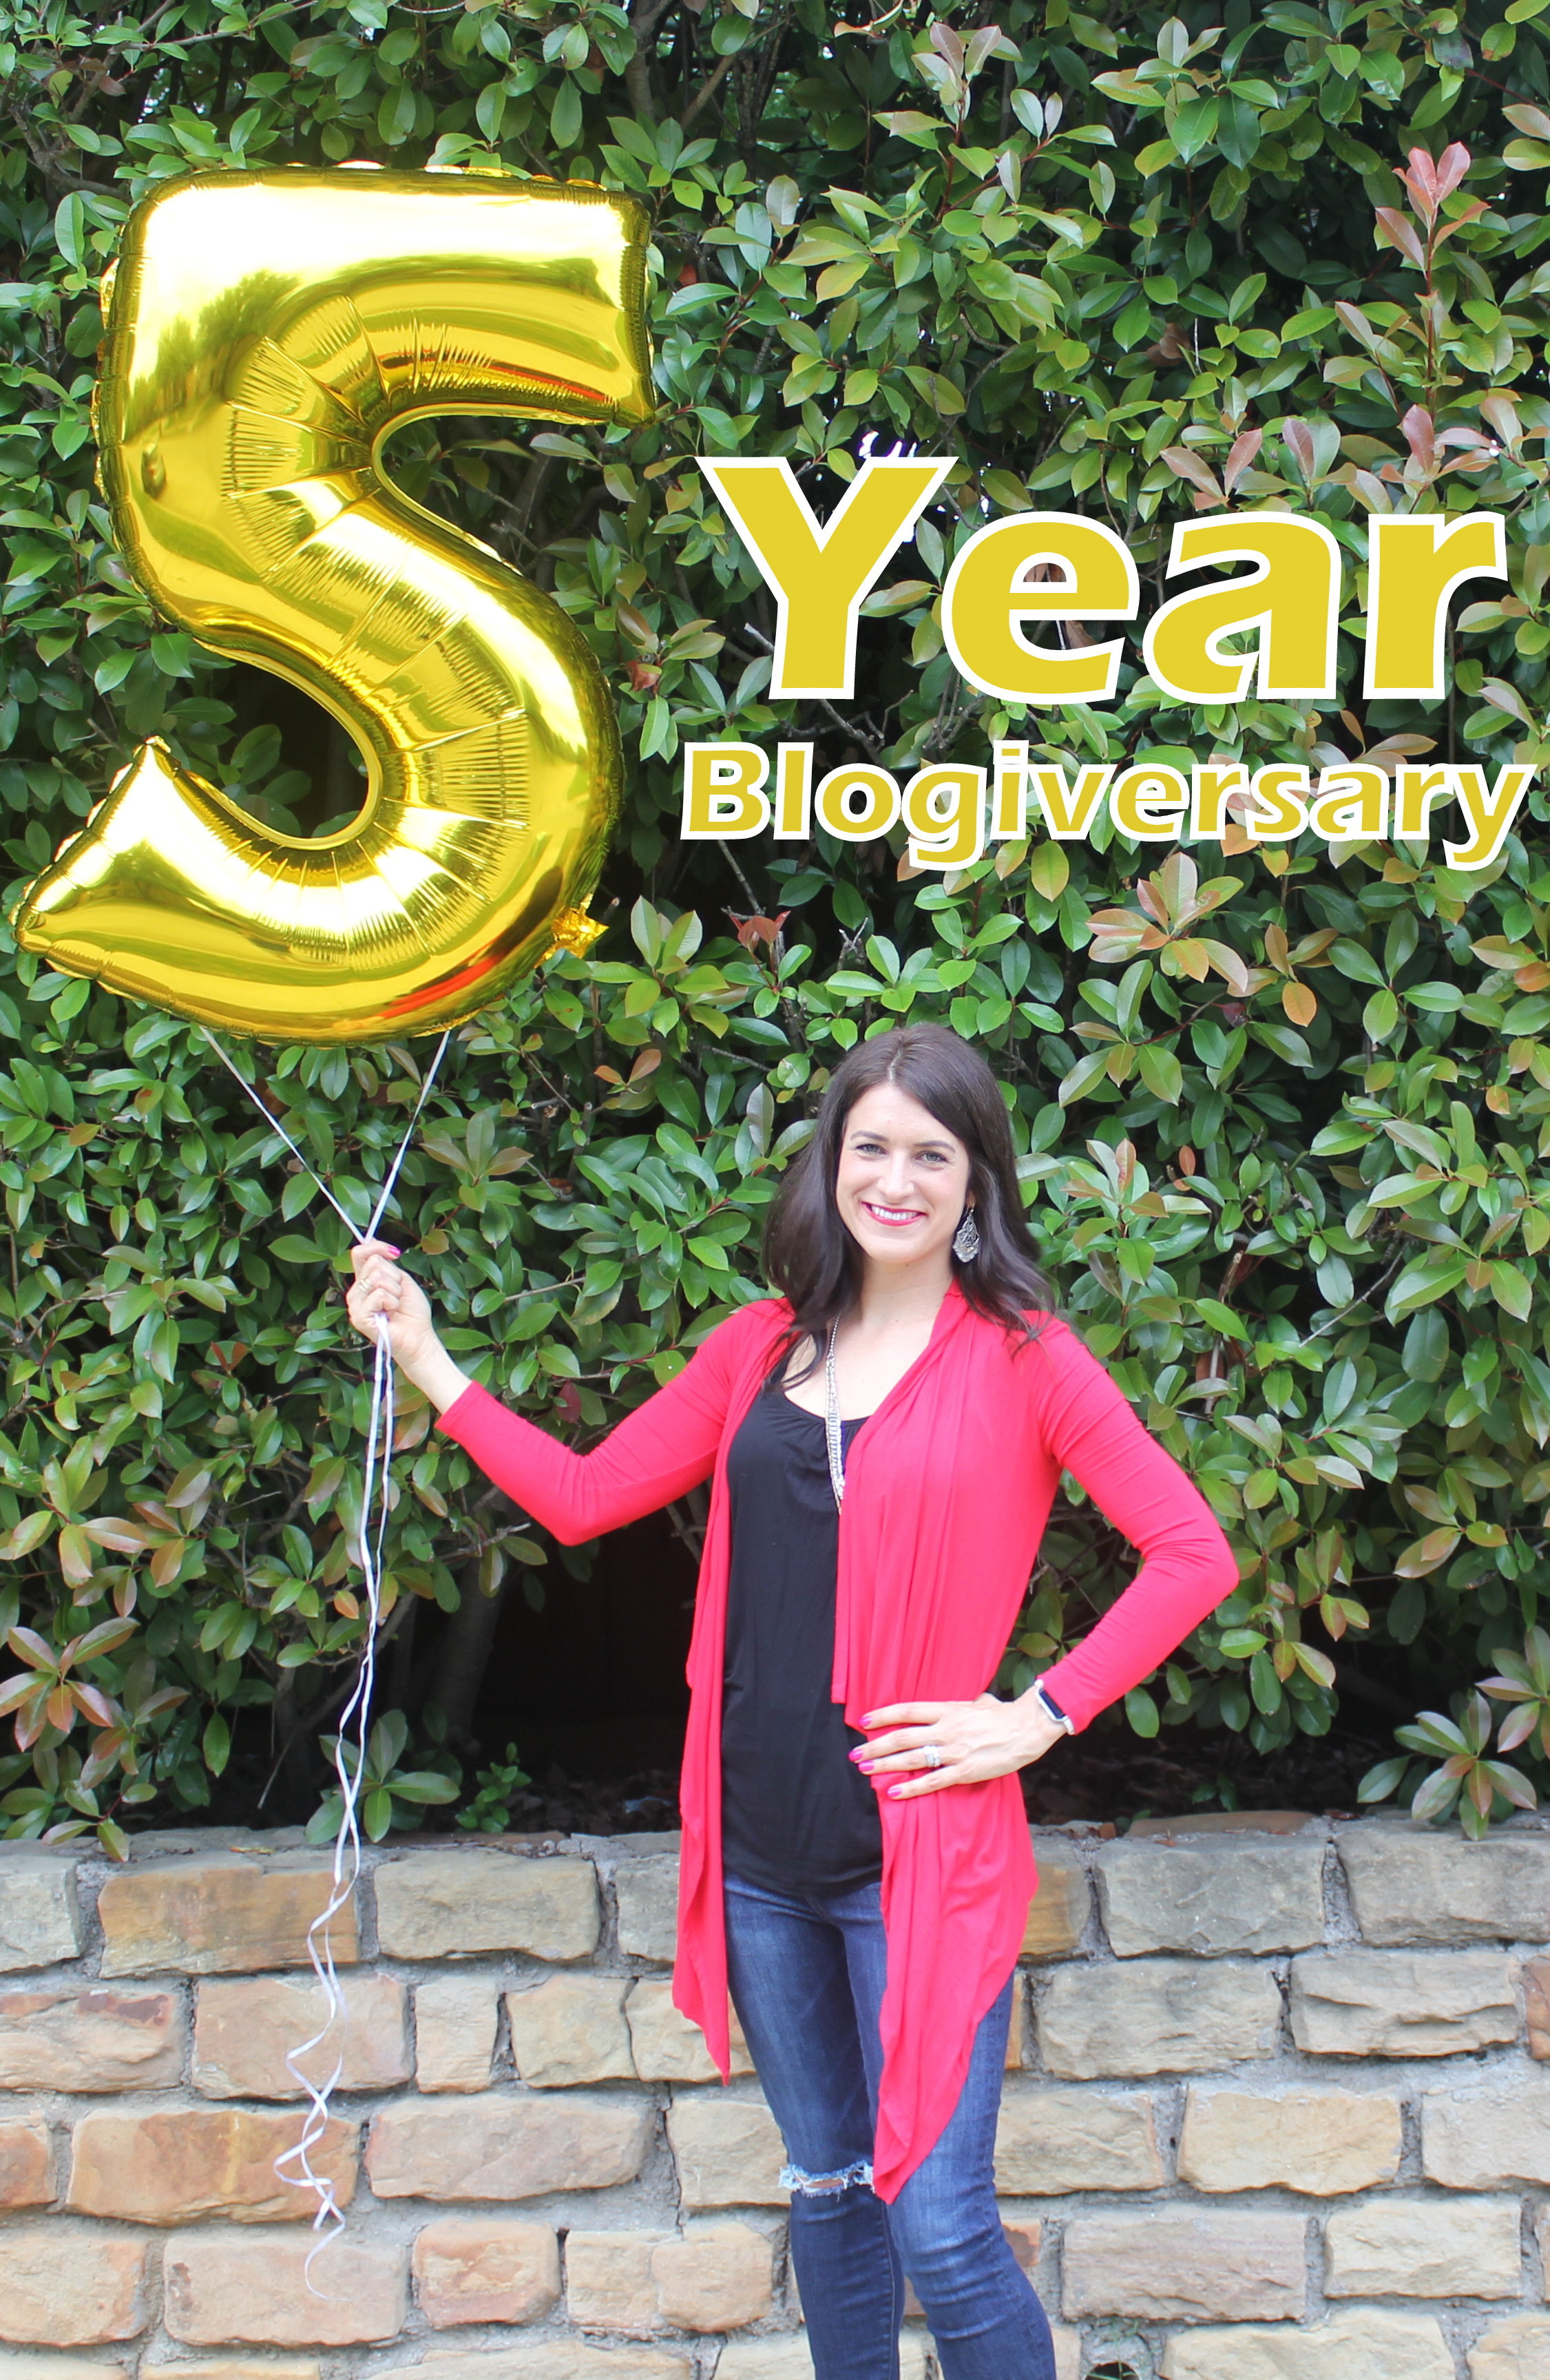 5 year Blogiversary - In Due Time